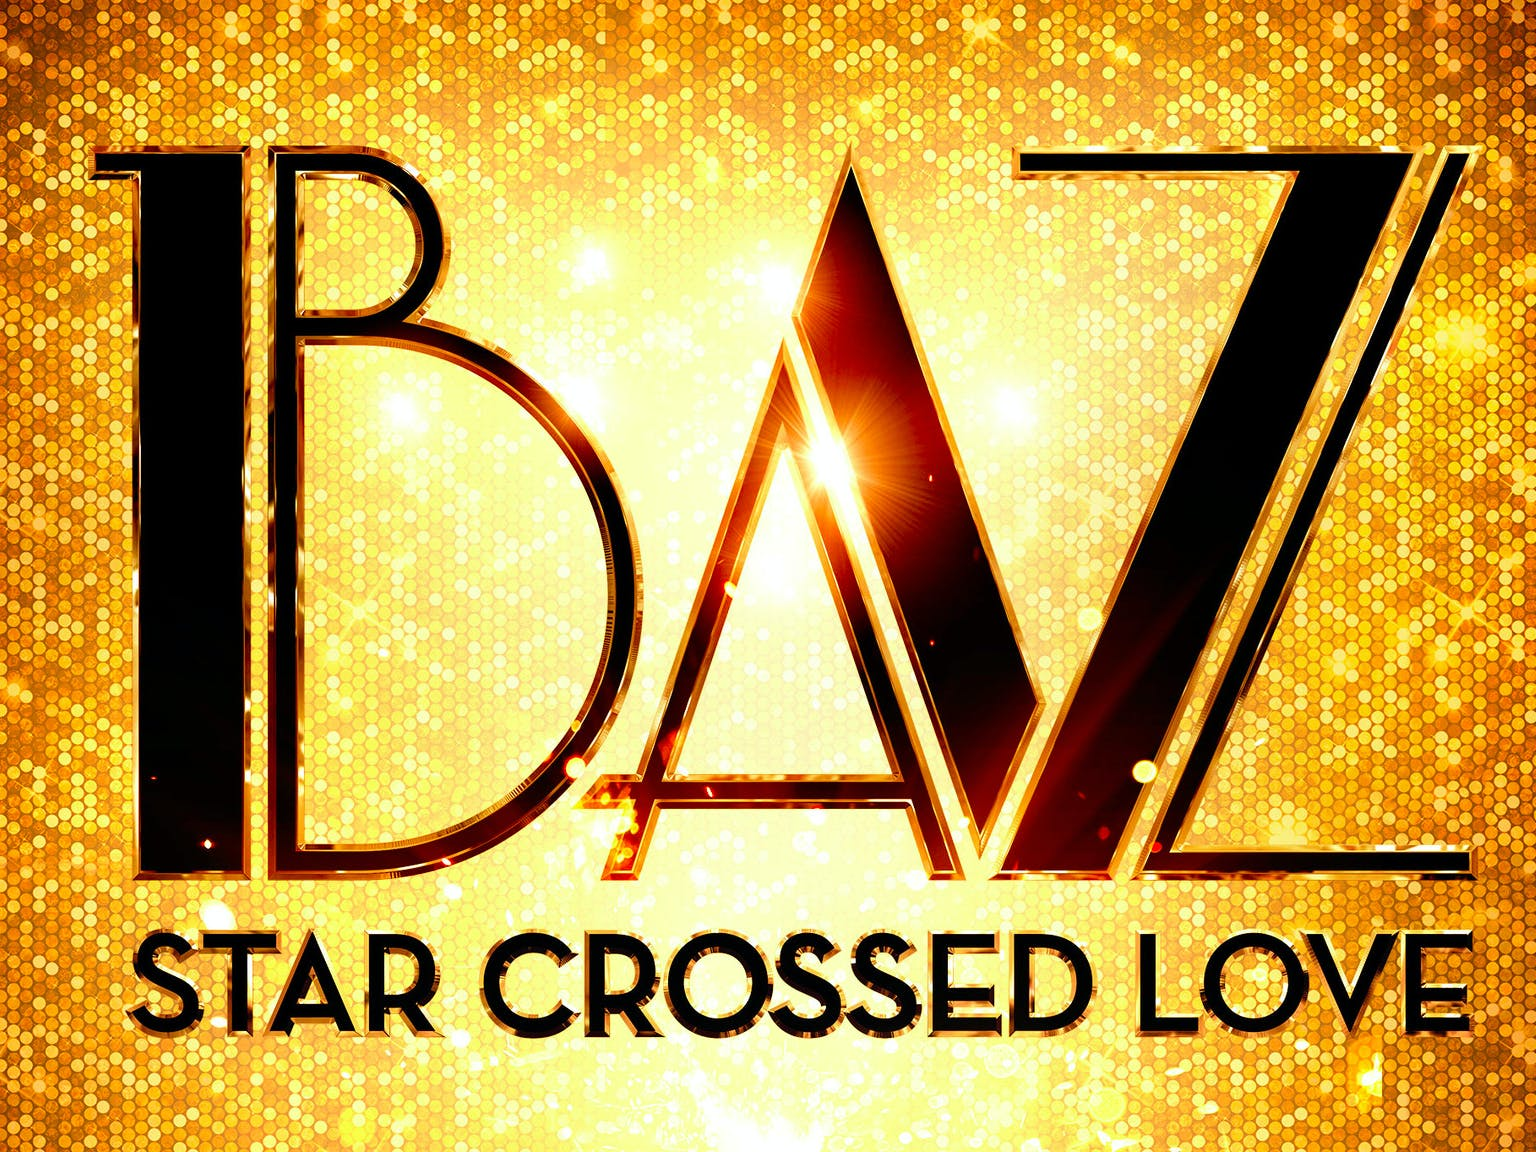 baz star crossed love-1